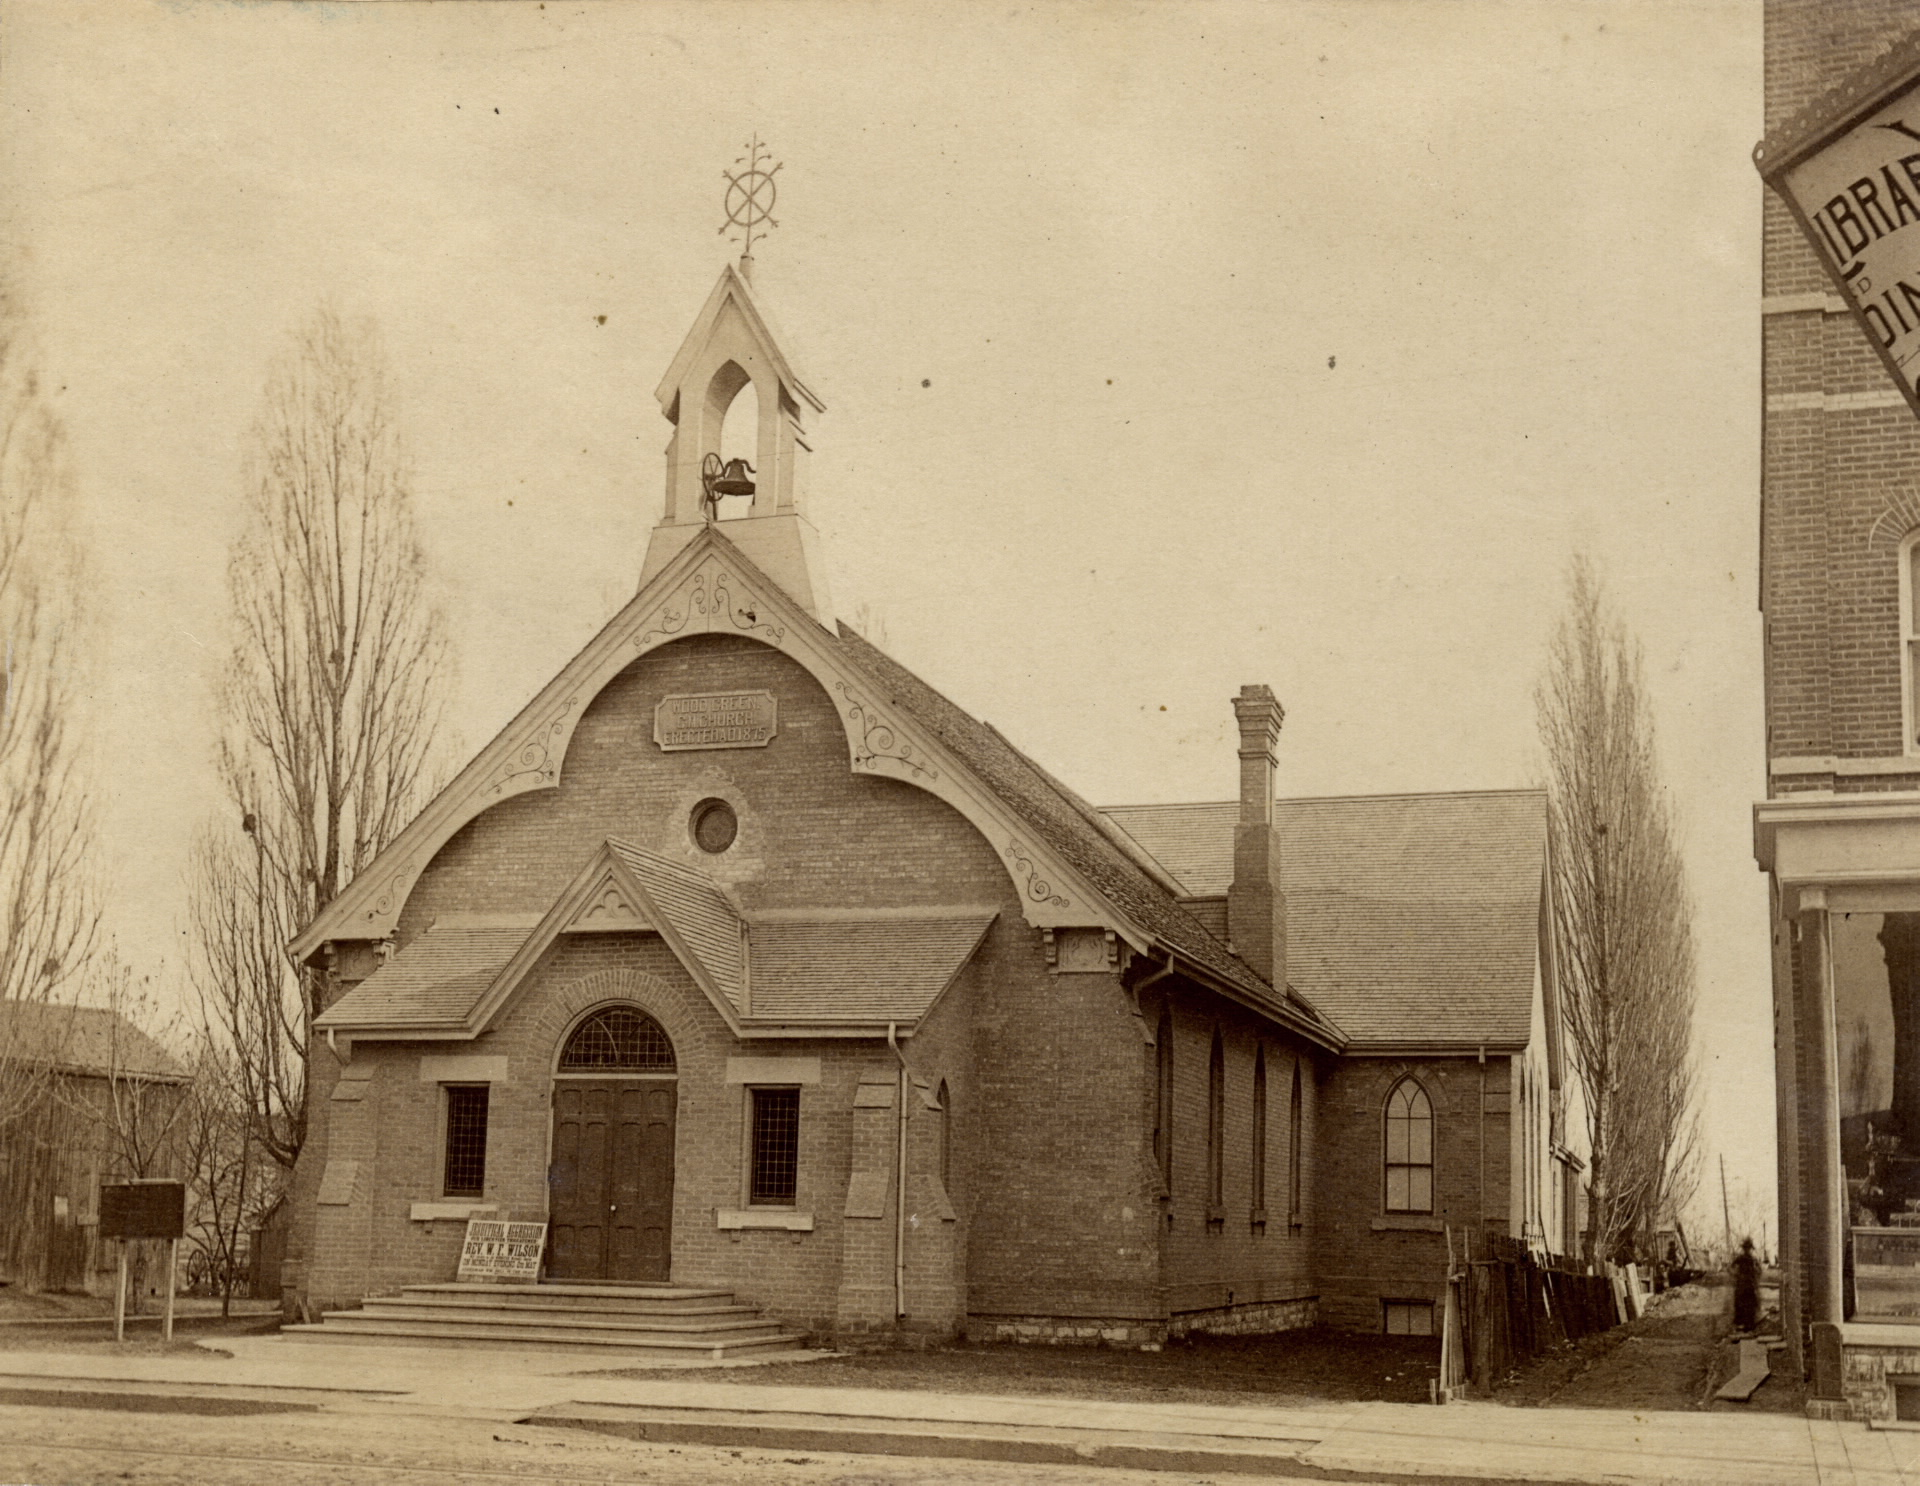 Woodgreen Methodist (United) Church, Queen St. E., s.w. corner Strange St., 1880's